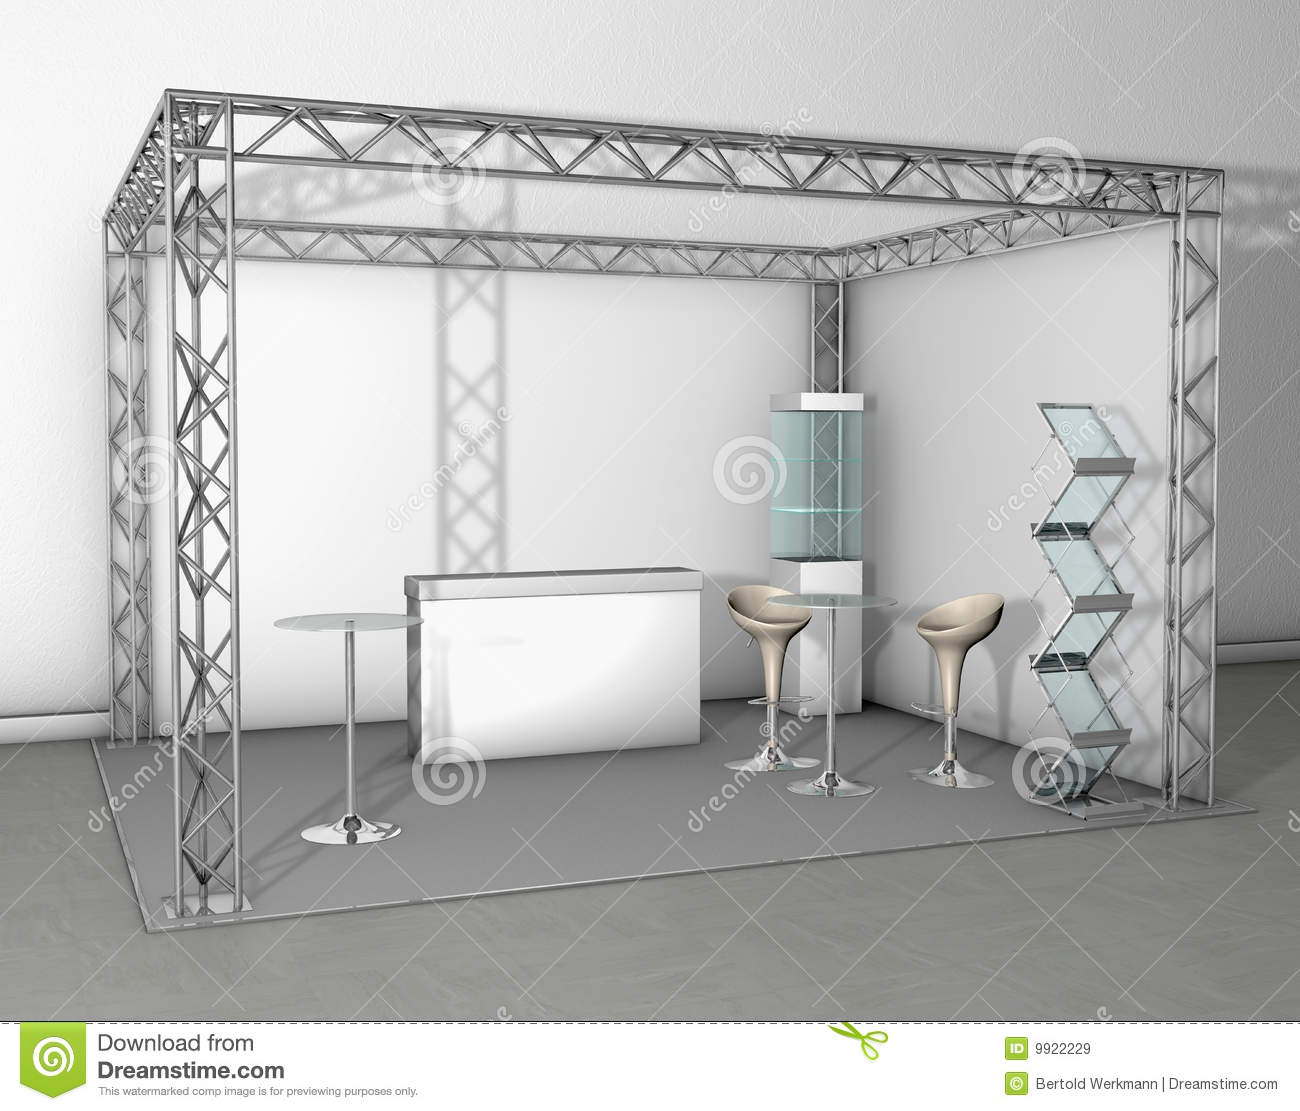 Le commerce de stand d 39 exposition images libres de droits for Exemple de stand